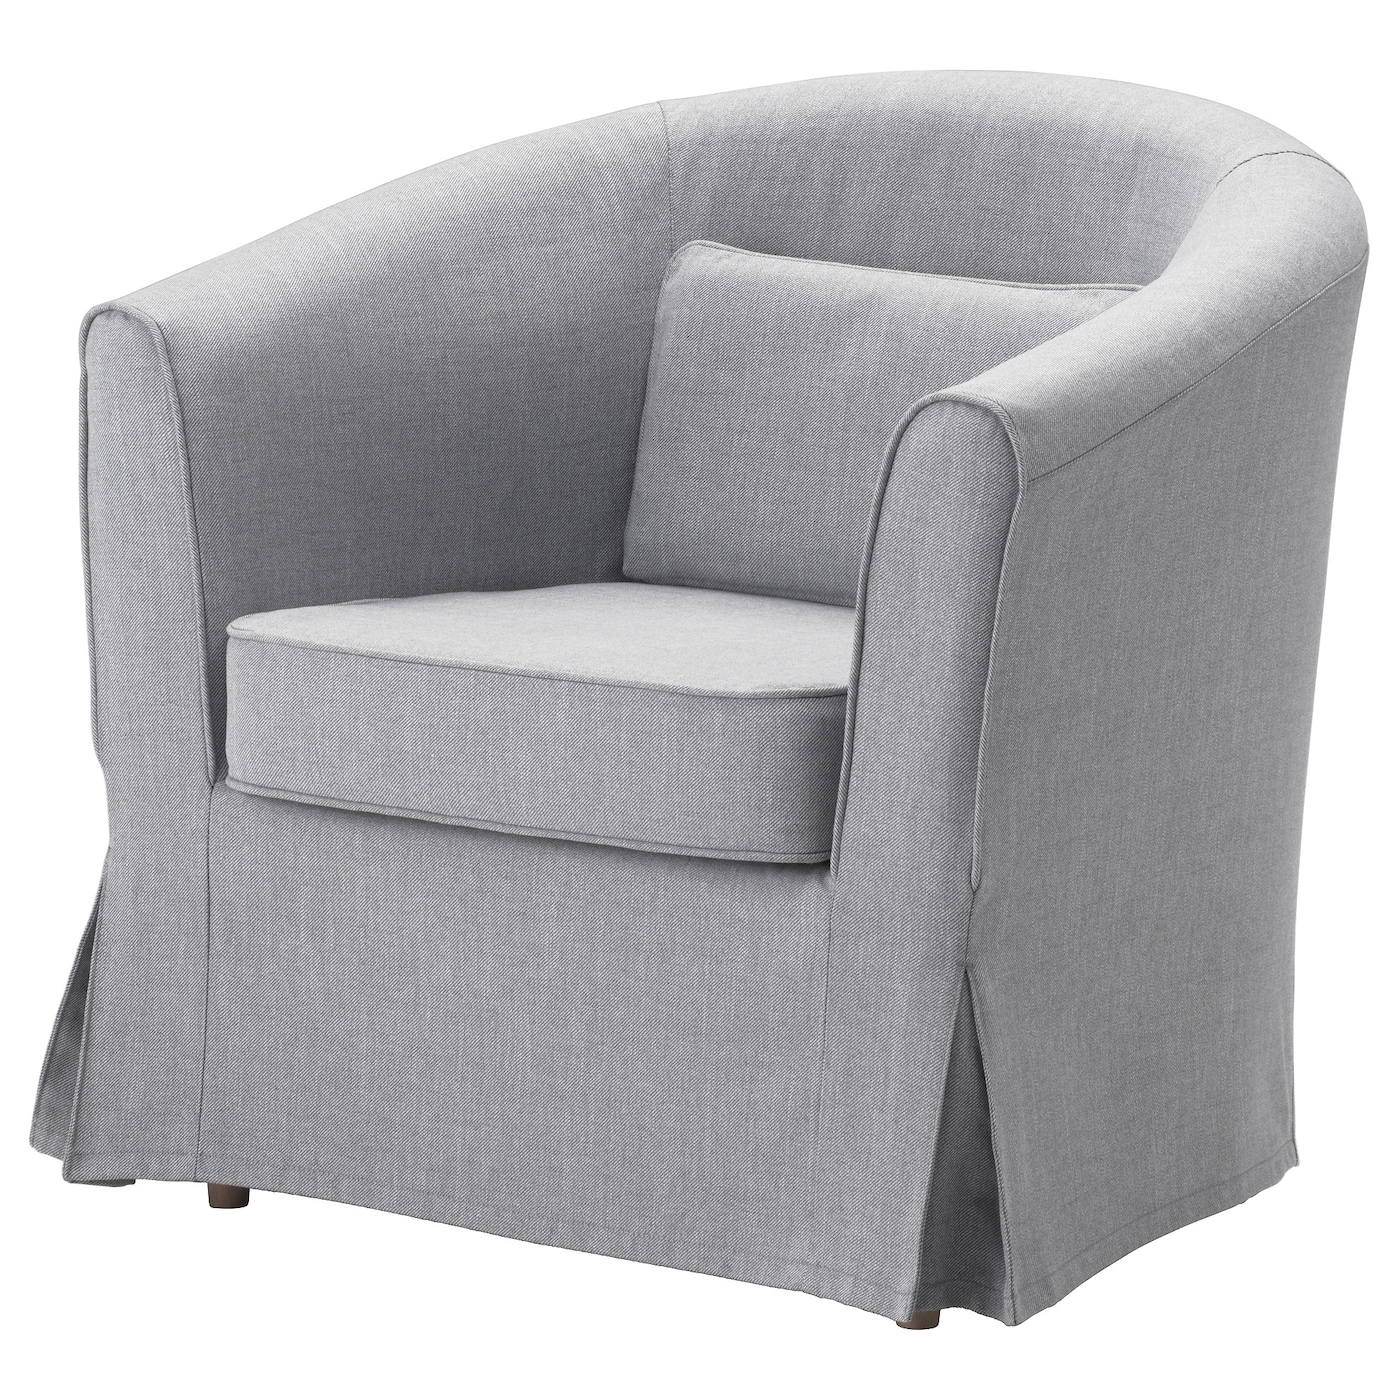 Charmant IKEA TULLSTA Armchair Cover The Included Cushion Can Be Used For Lumbar  Support.